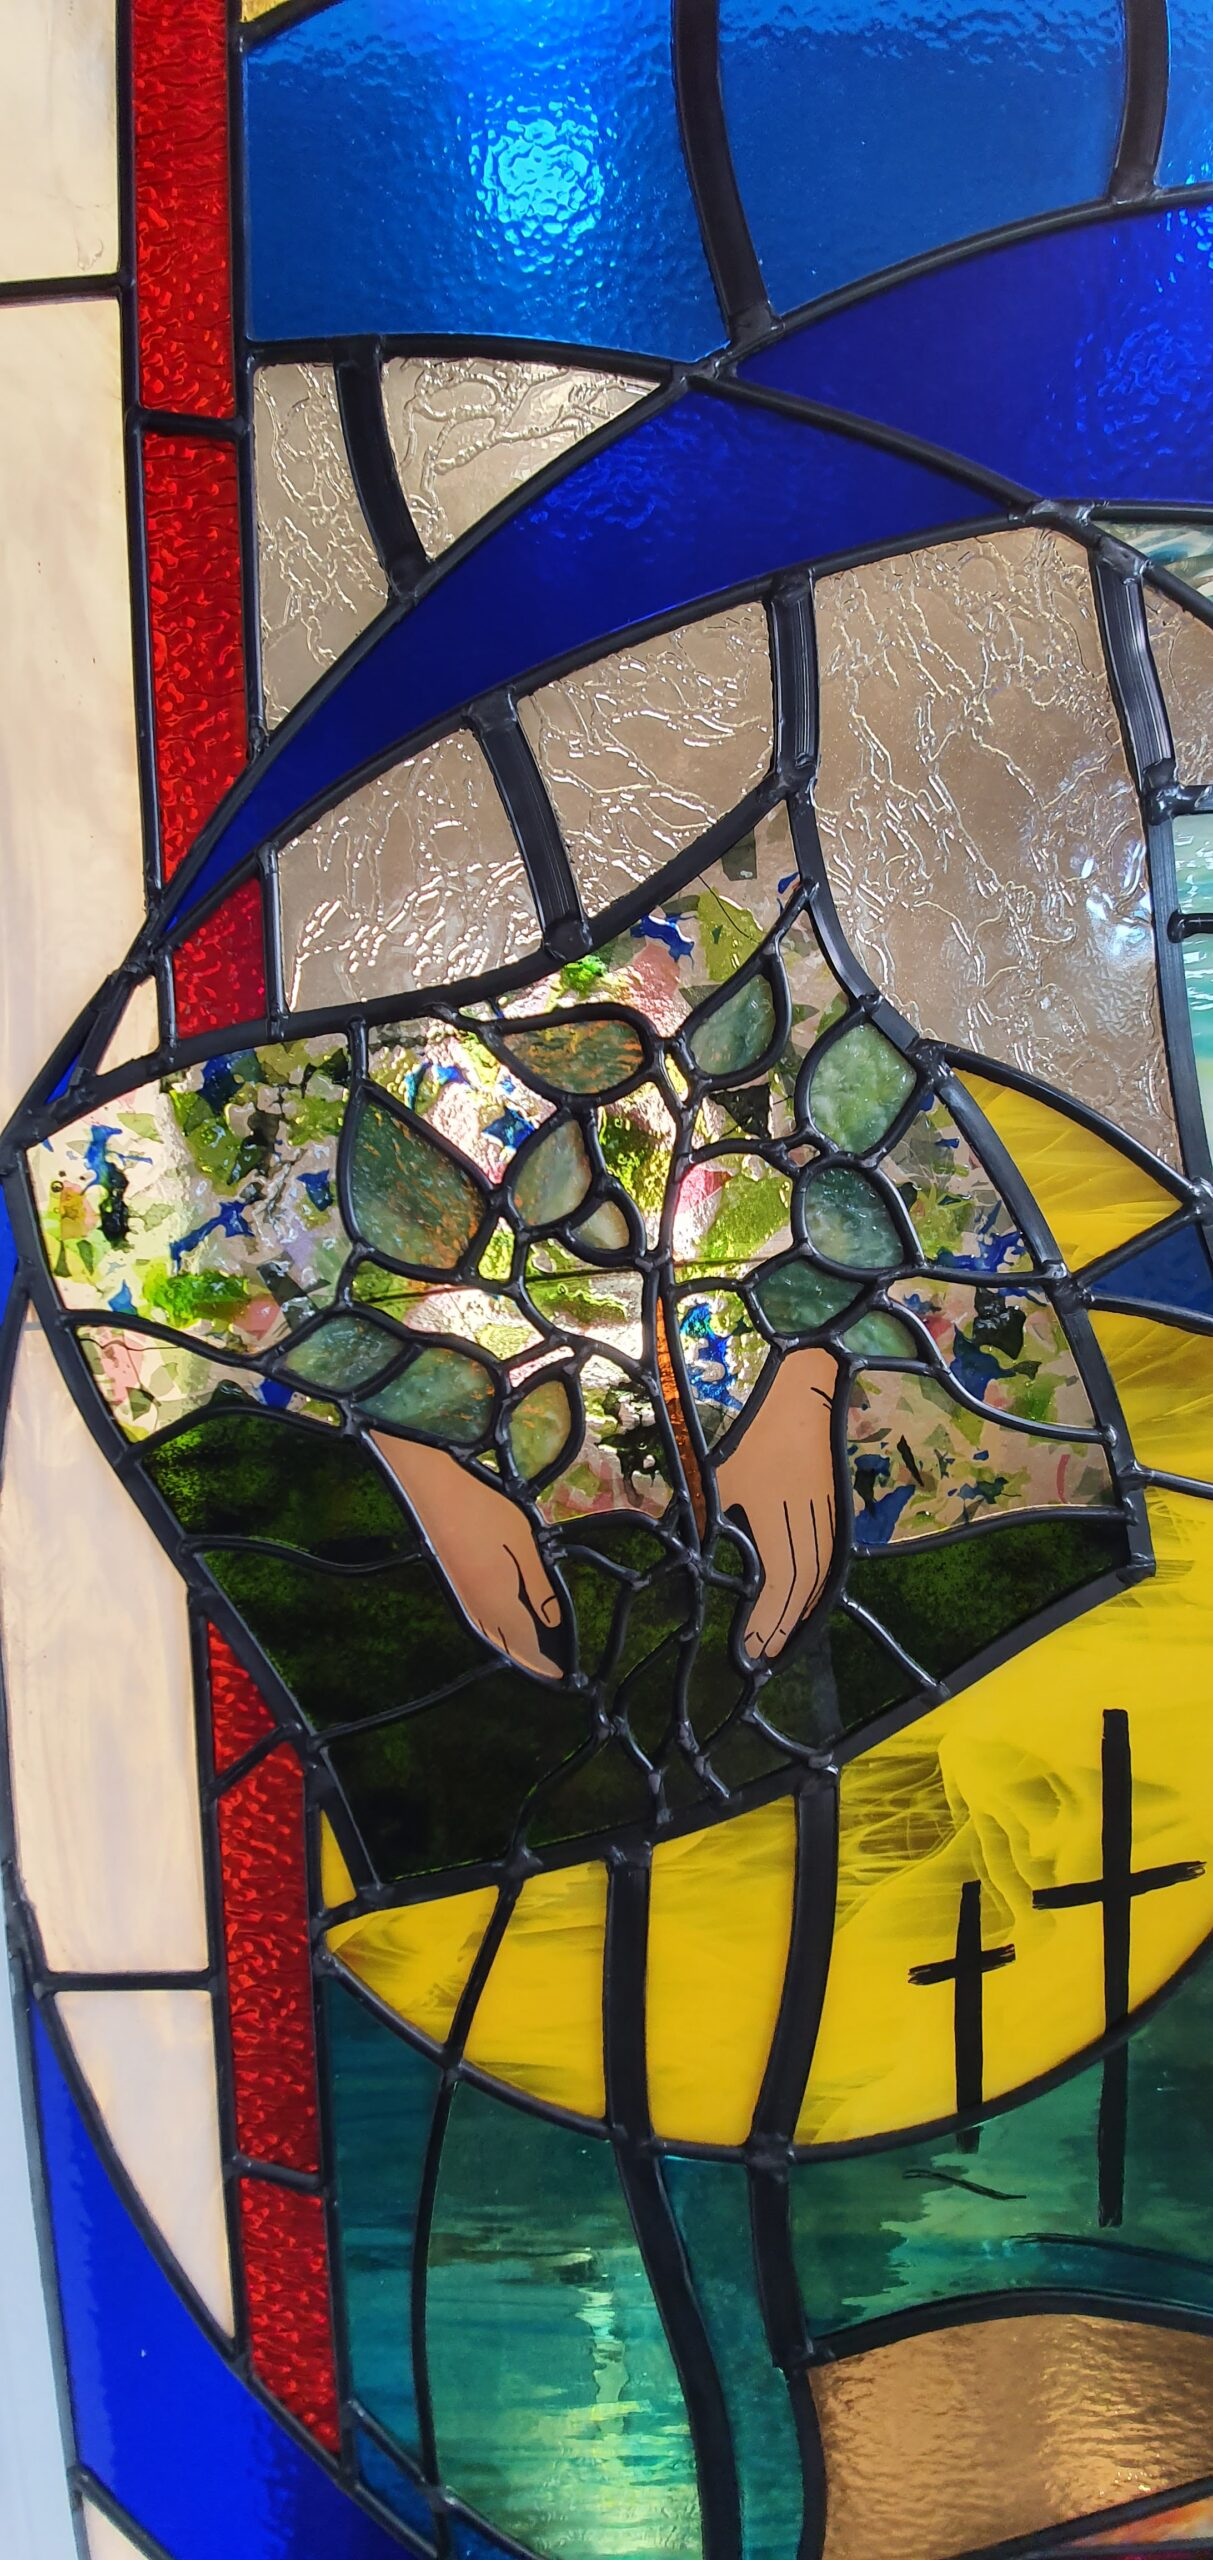 Planting A Future in North Hobart - Stained Glass Window